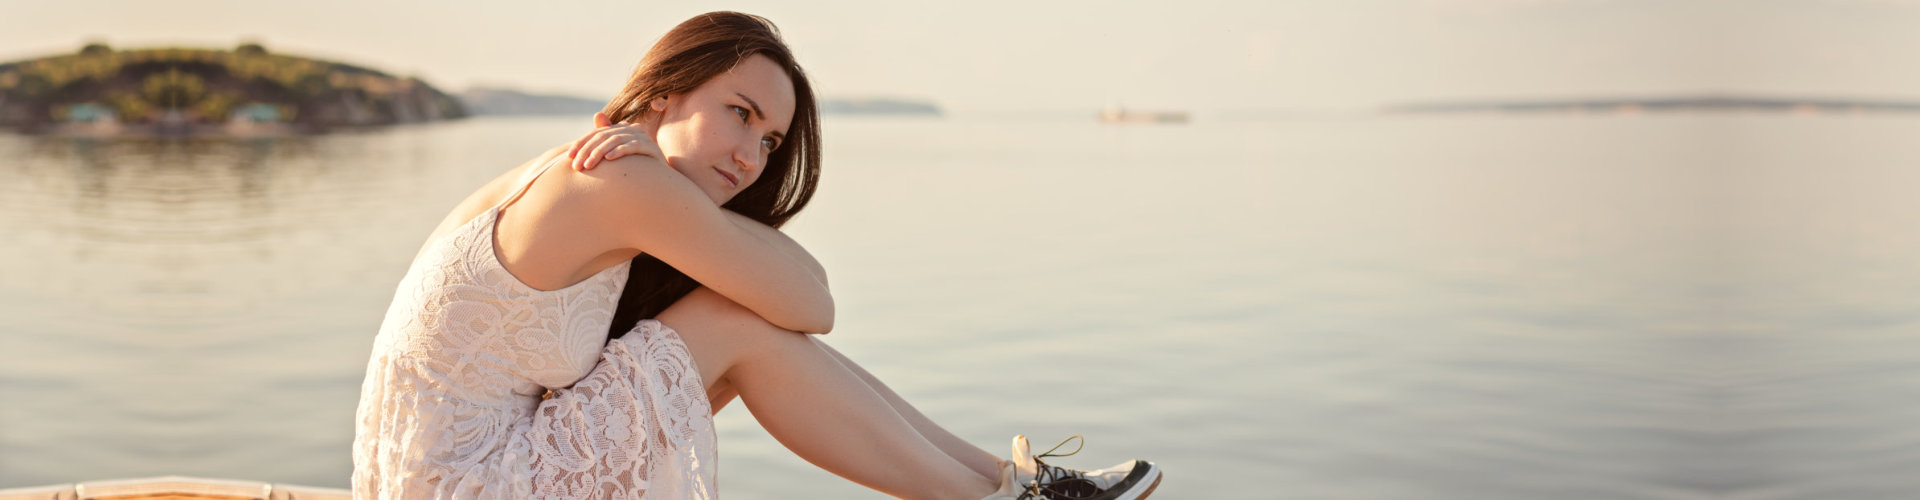 girl sitting on the pier